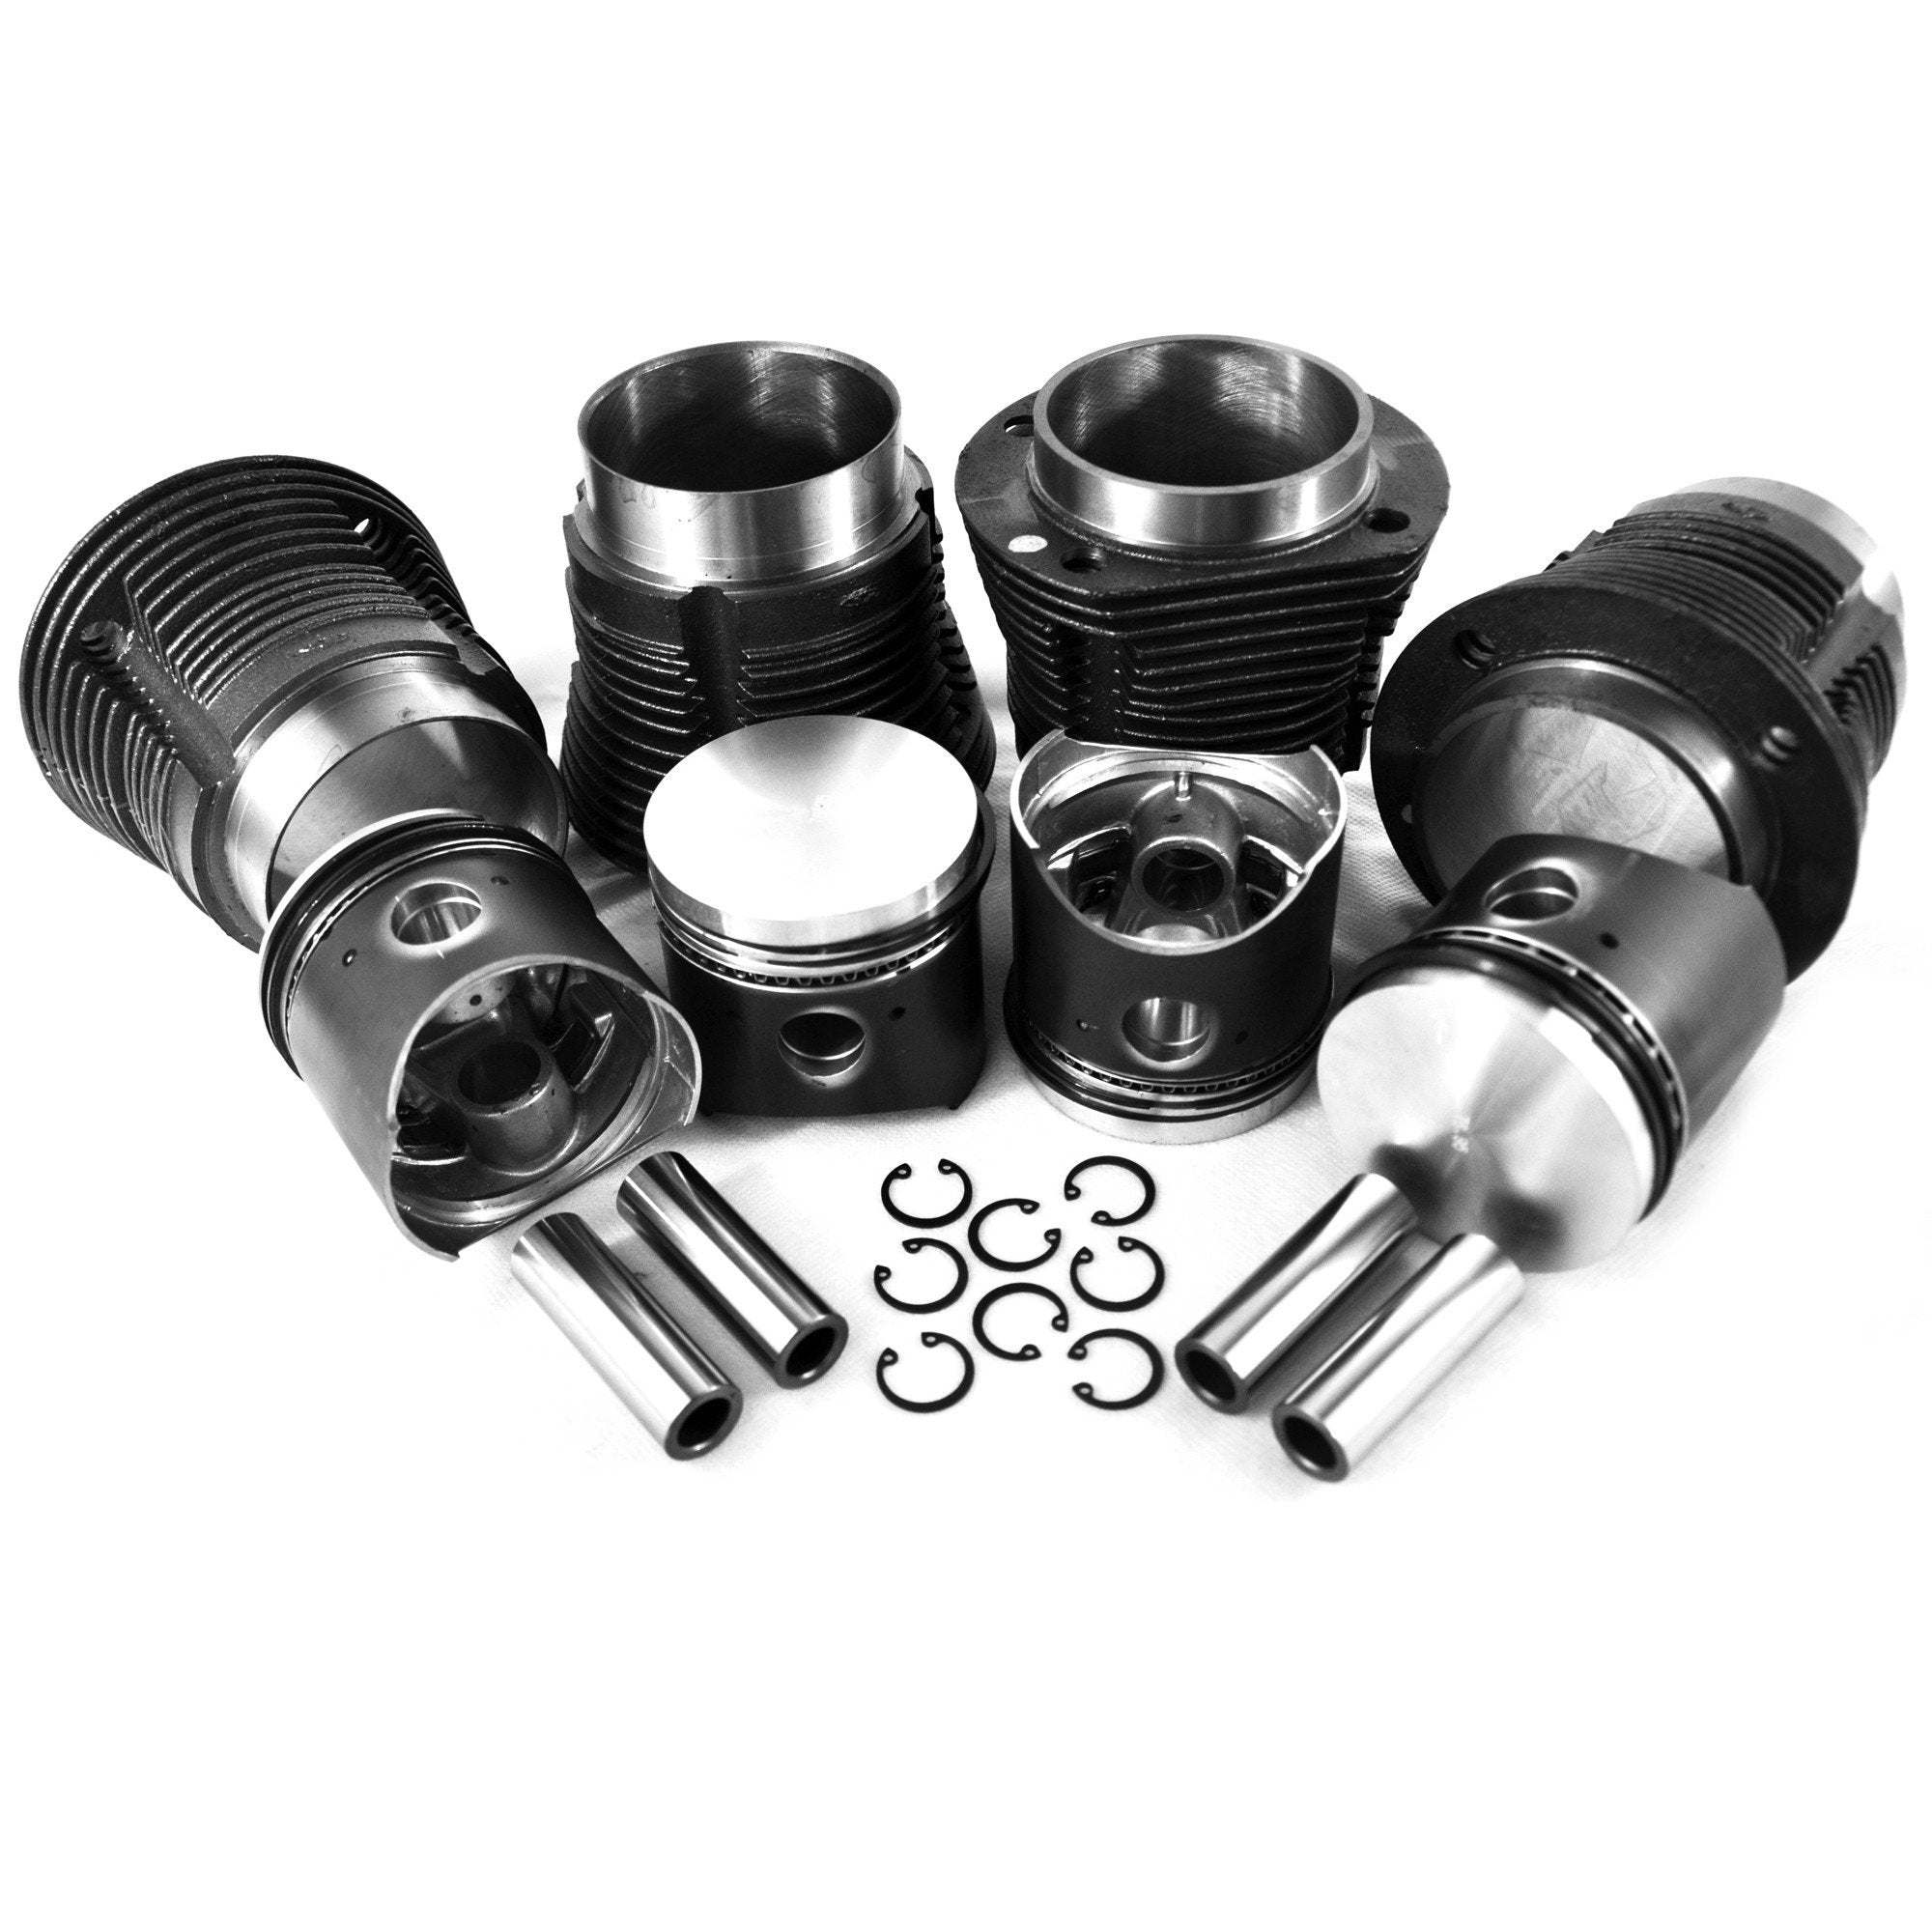 VW 77MM 36 Horse Power Piston & Cylinder Kit - LJ Air-Cooled Engines